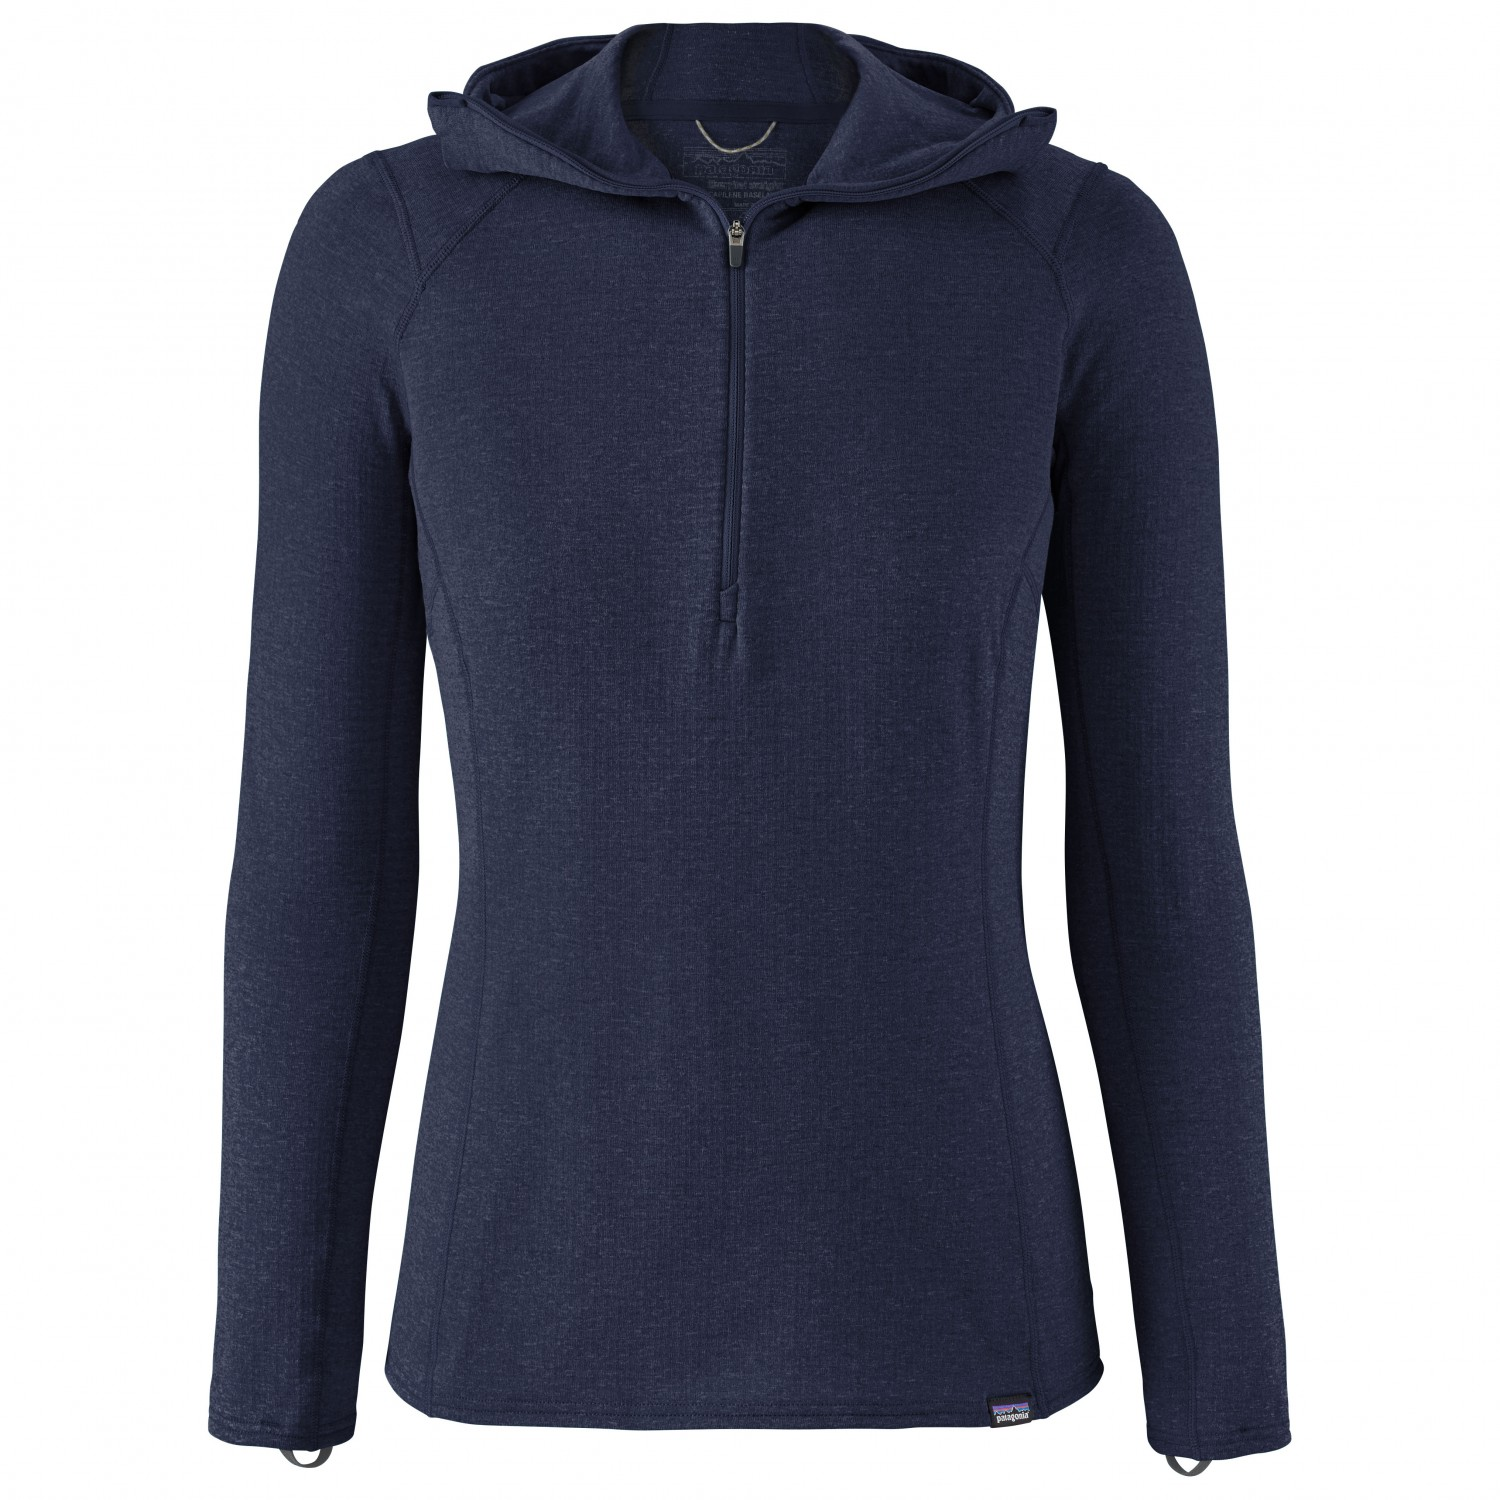 Capilene Envío Weight Patagonia Mujer Hoody Neck Thermal Zip zxcdg4w